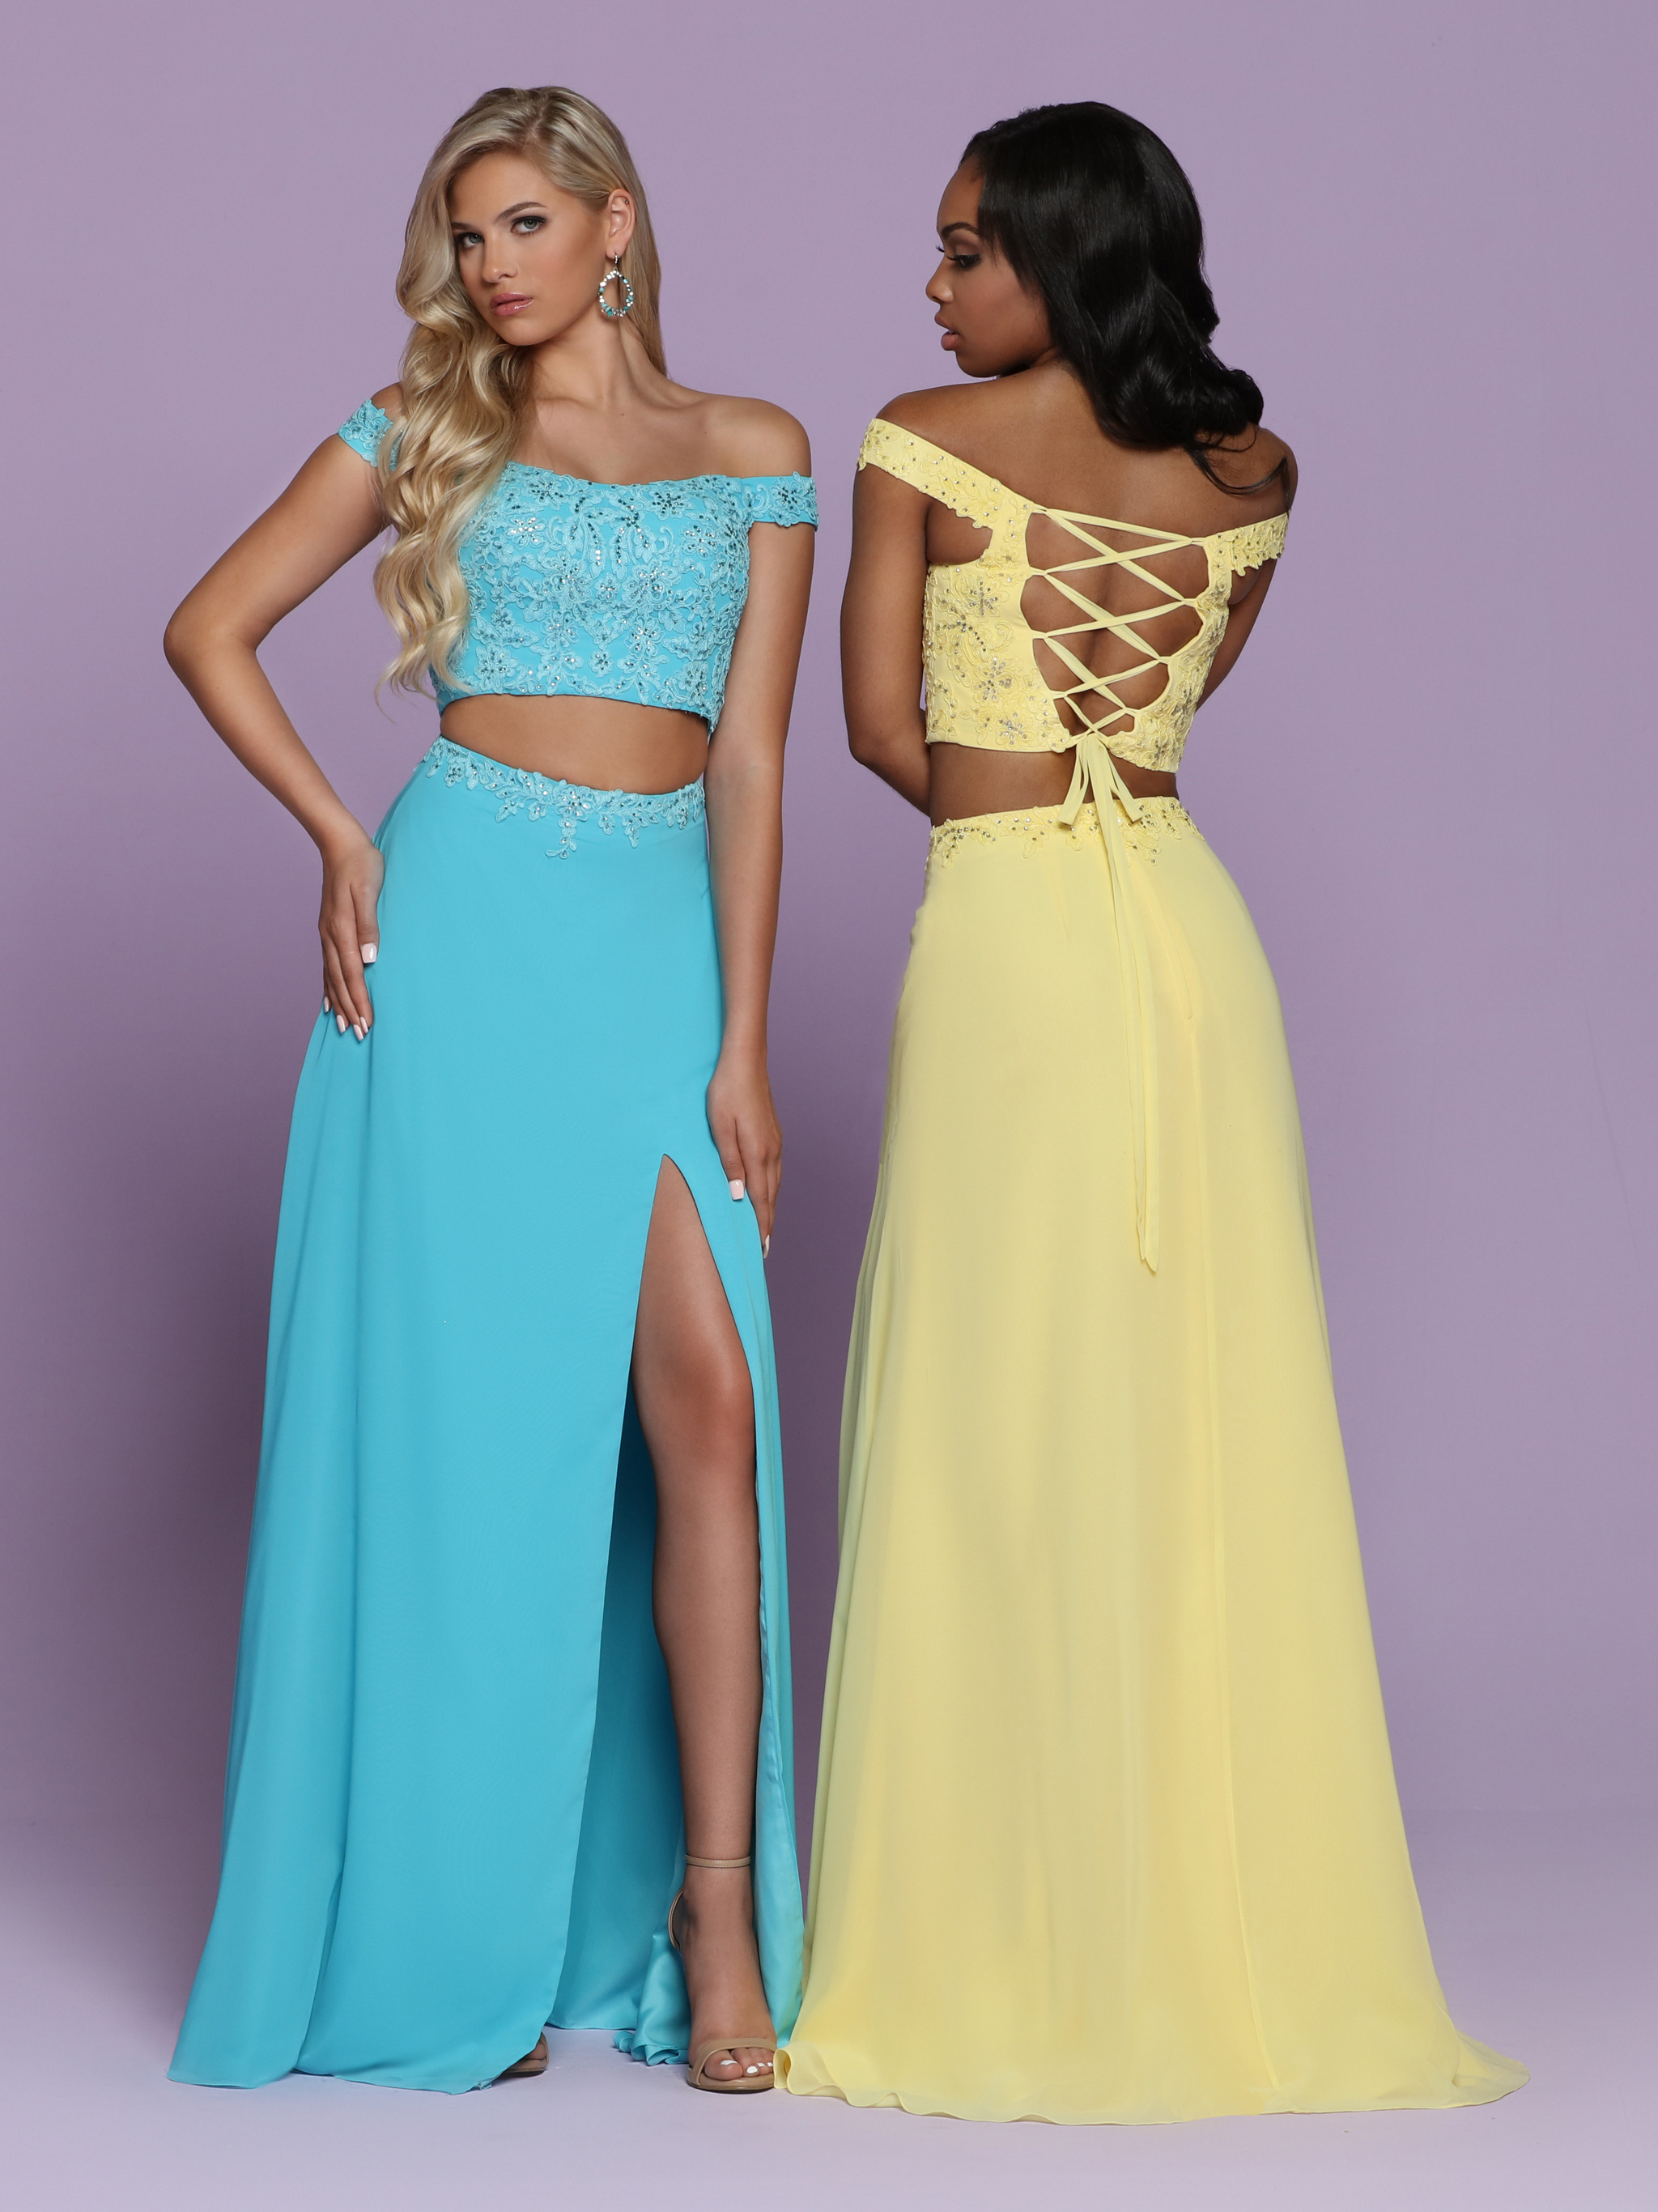 Image showing back view of style #72069